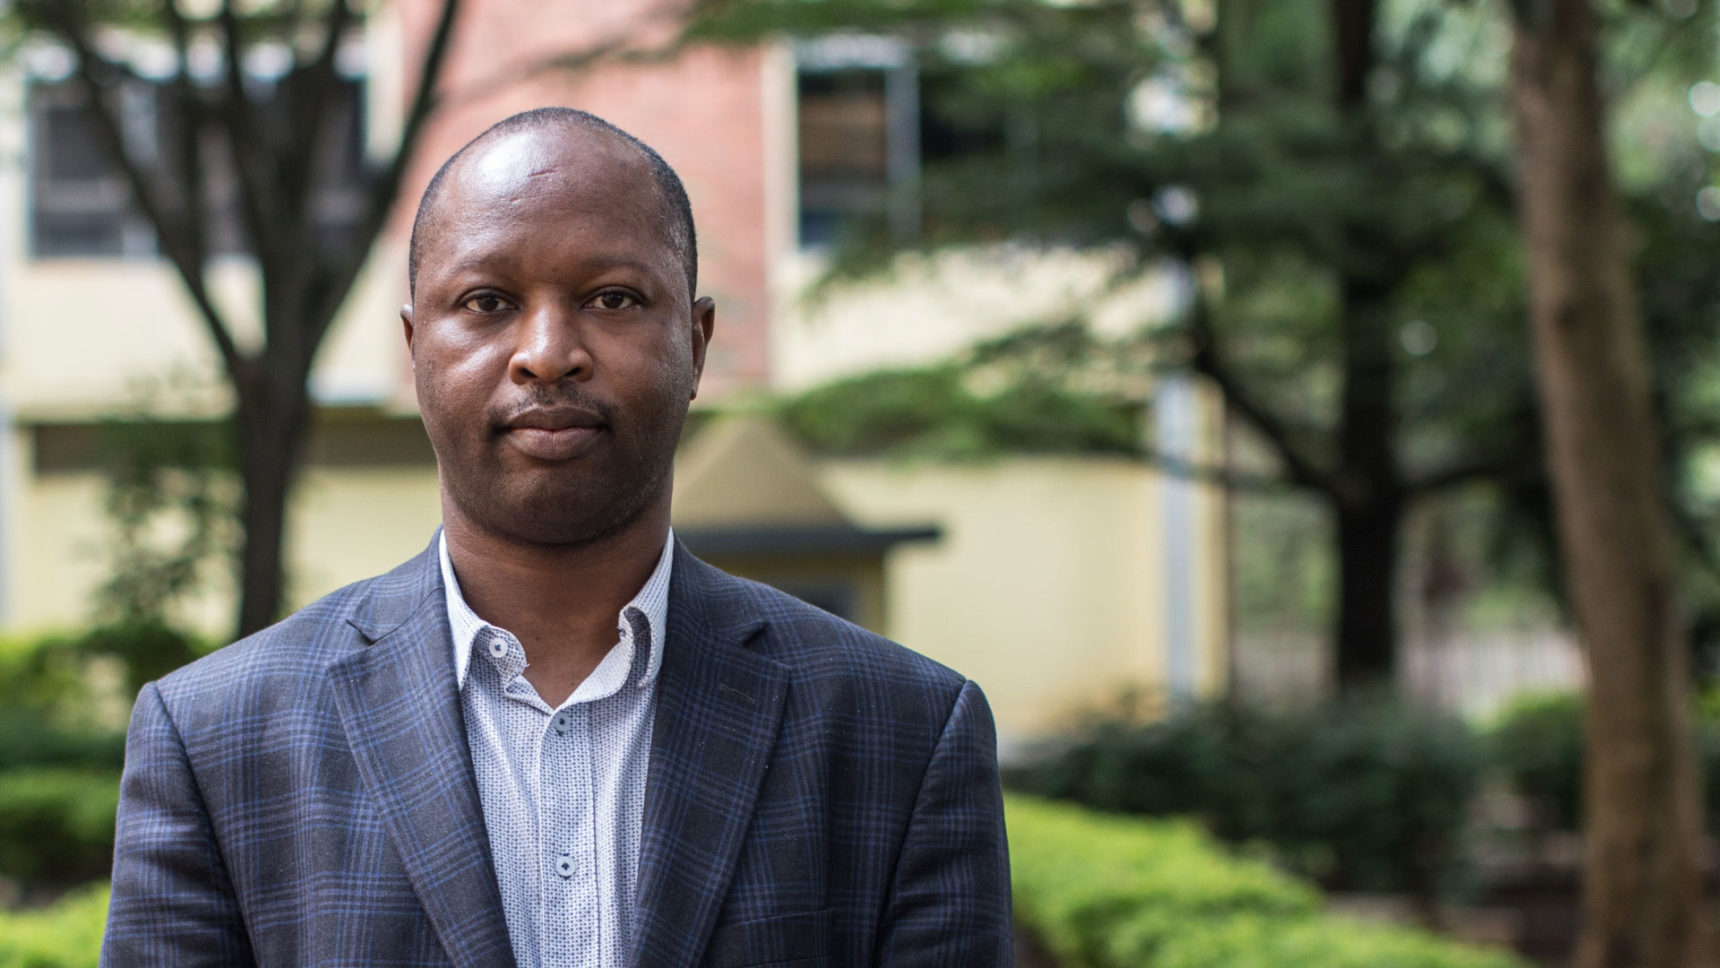 Omololu Akin-Ojo of the East African Institute for Fundamental Research discusses his plans to invigorate theoretical physics in Africa, including by focusing on problems related to energy and water that will especially impact the continent.